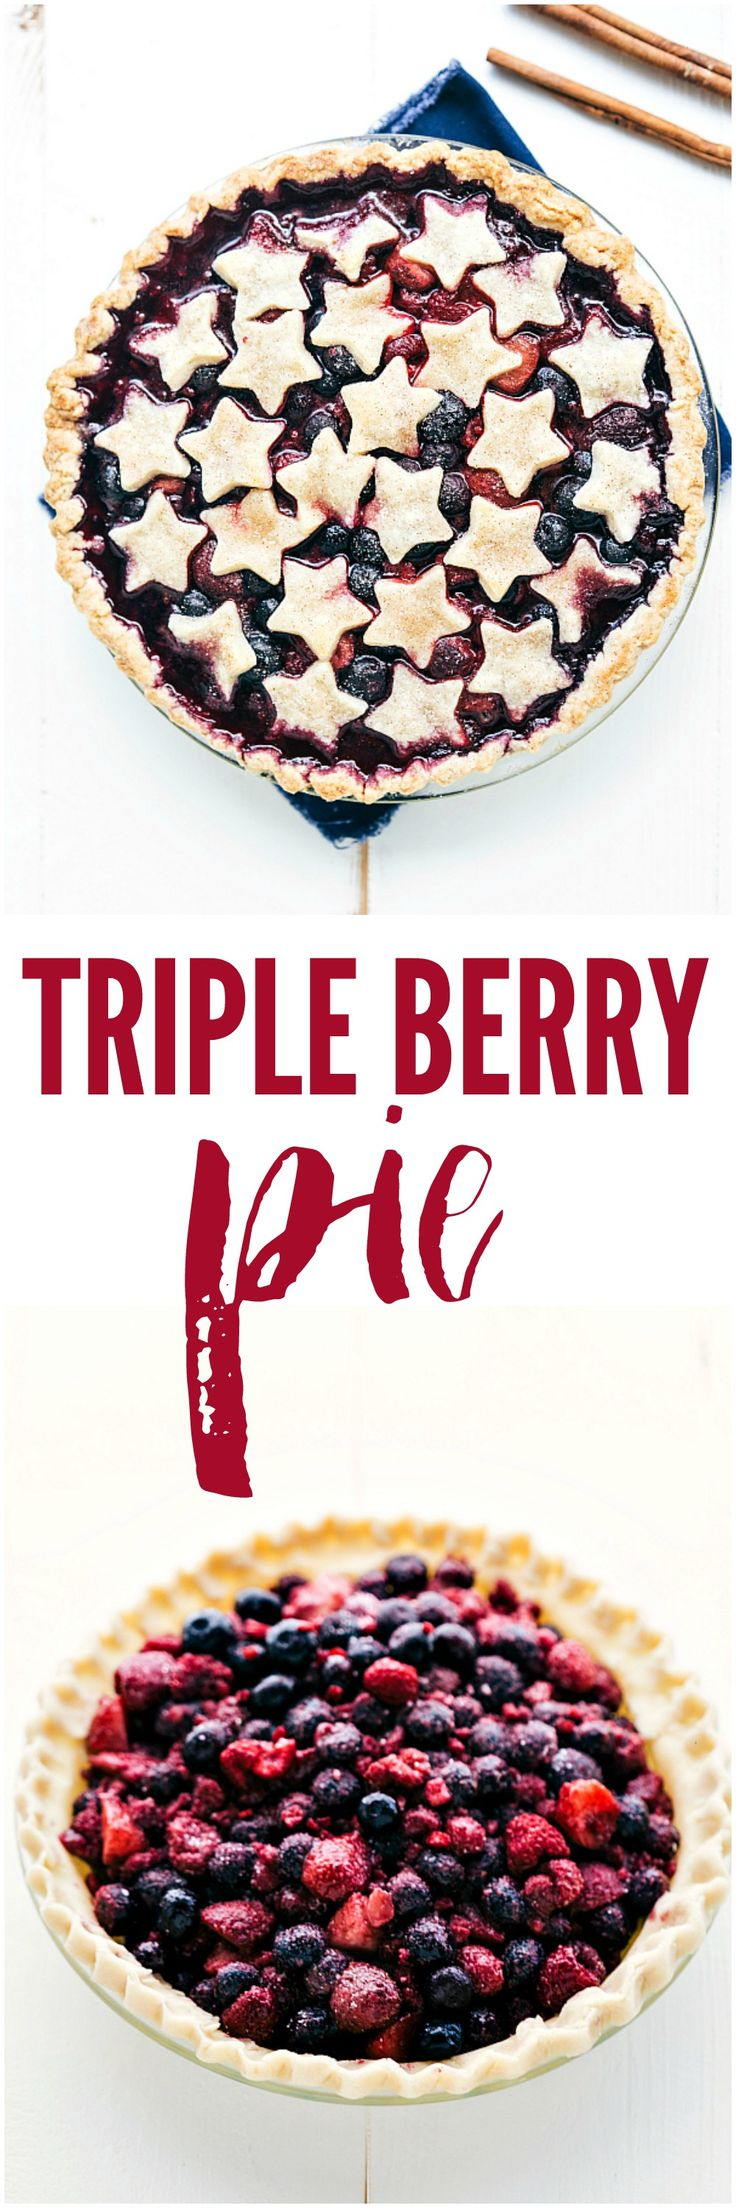 A patriotic fourth-of-July triple berry pie made simple with easy ingredients!